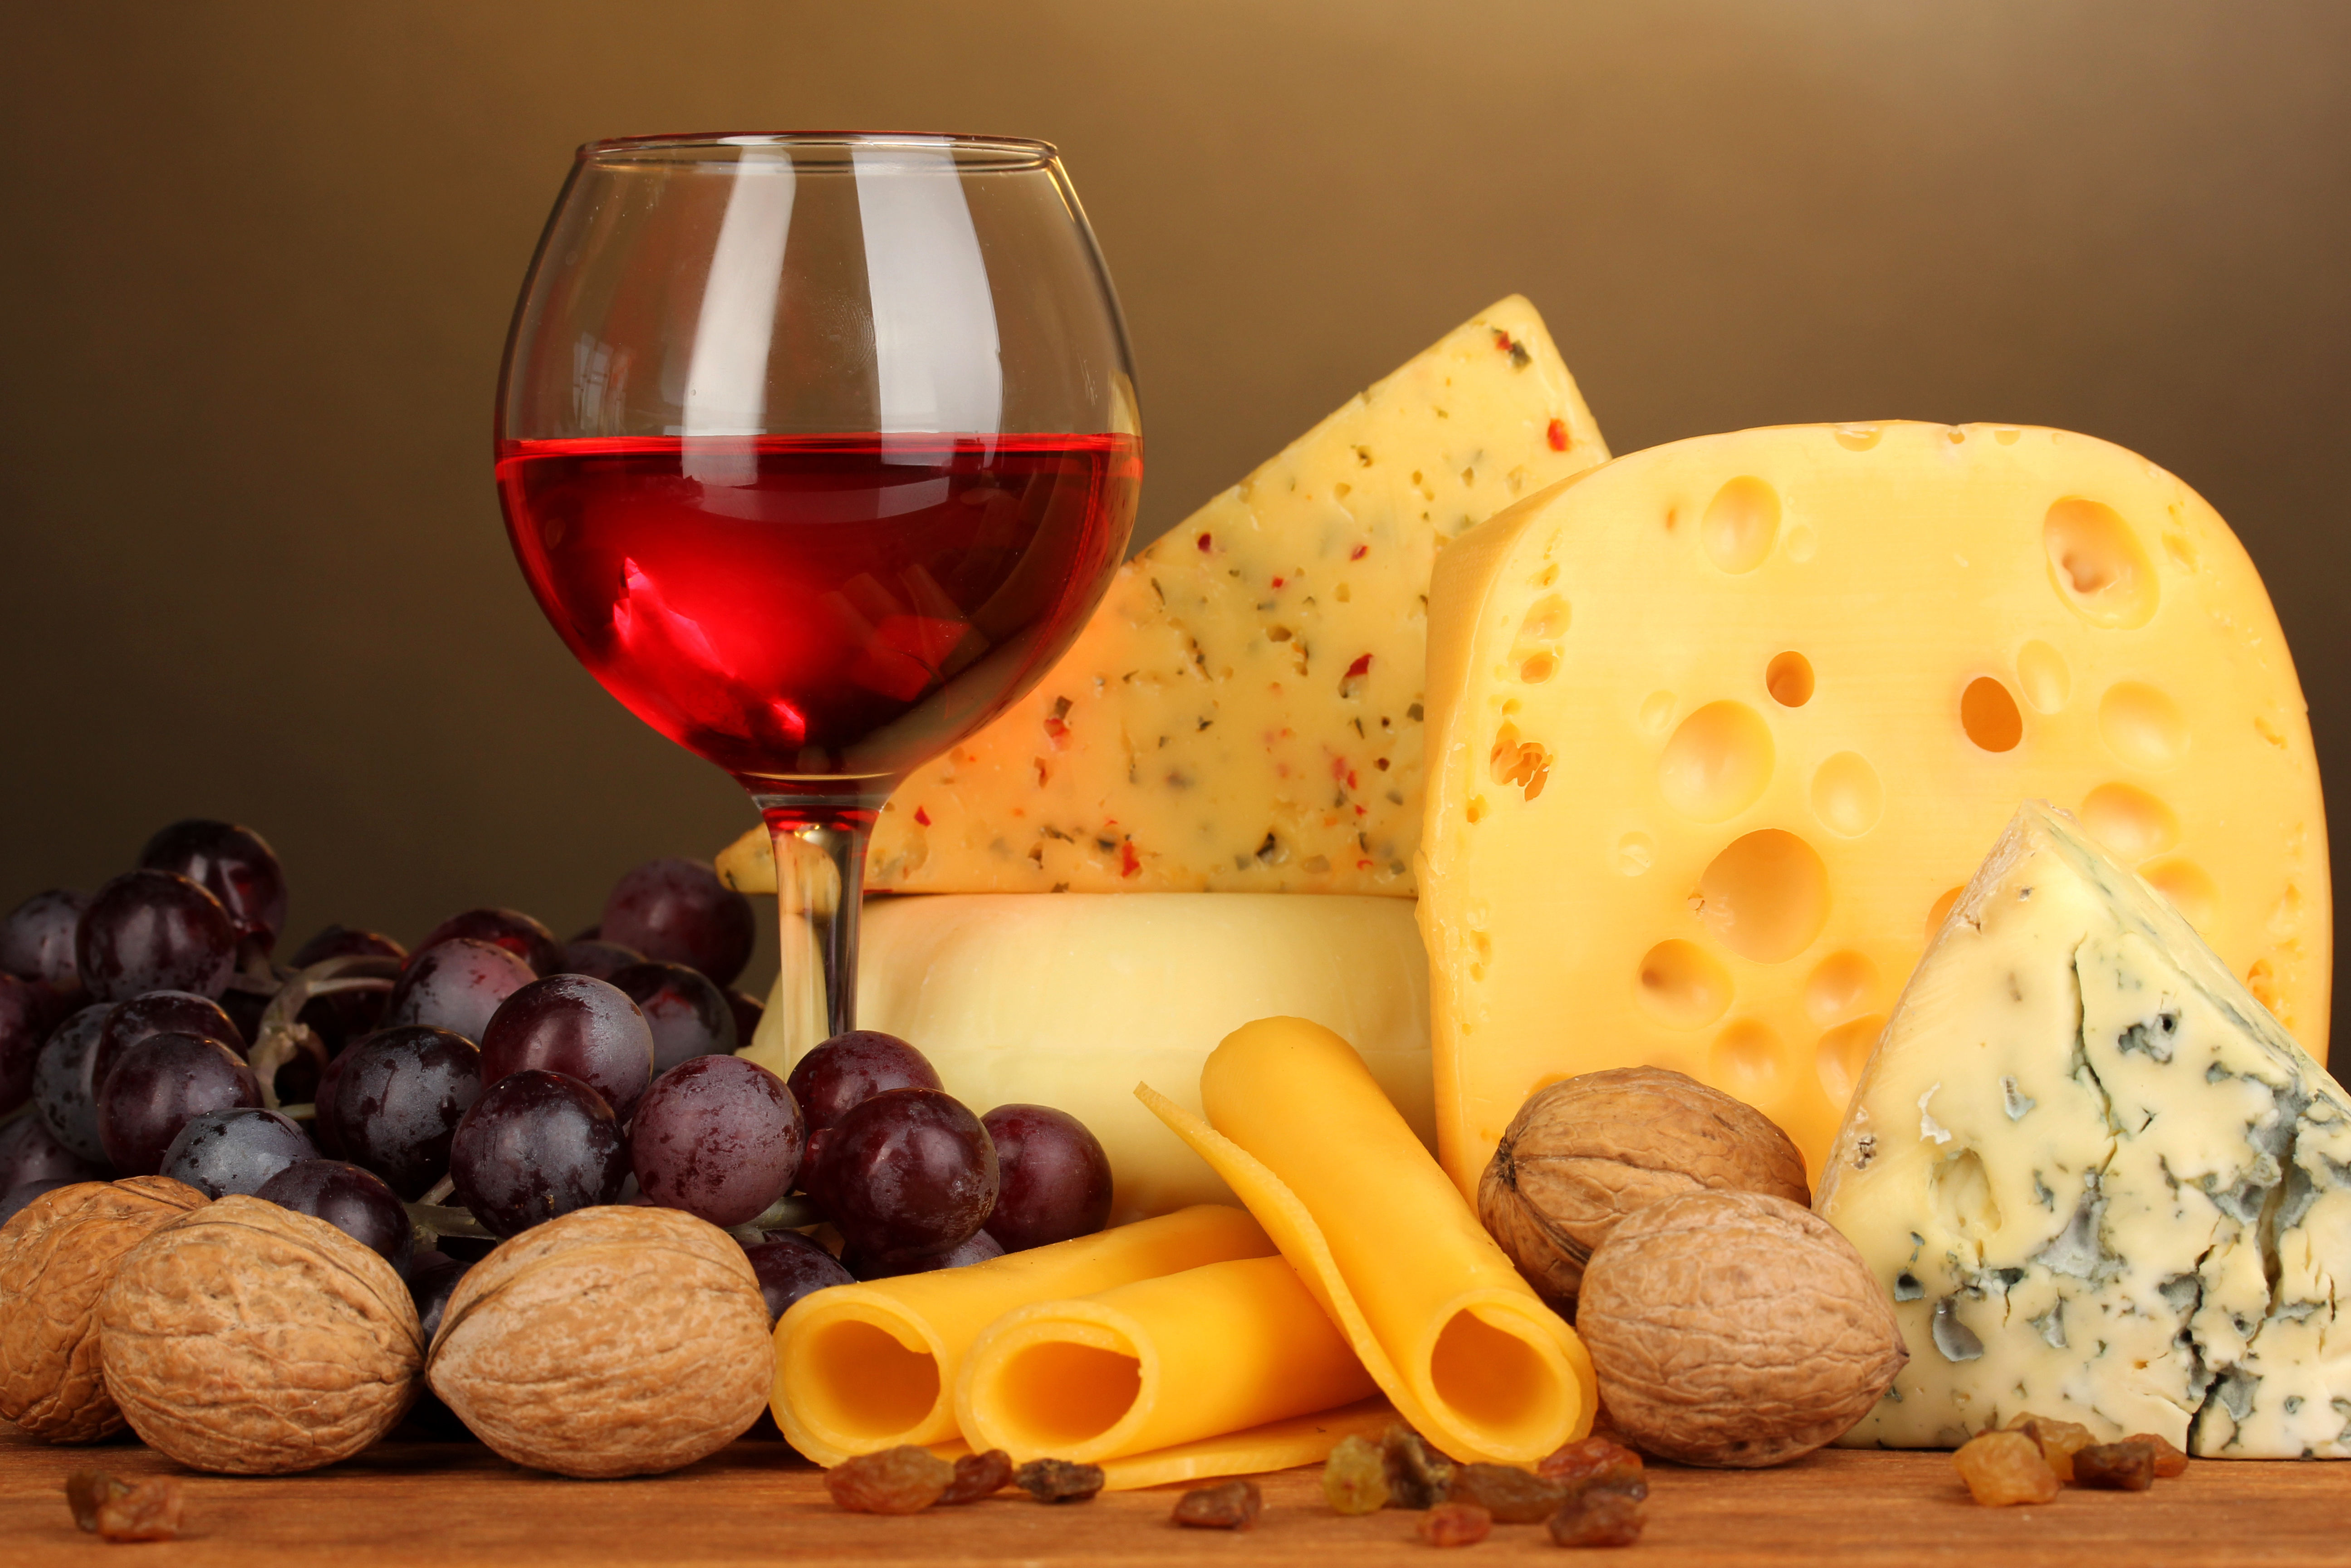 Cheese mix and a glass of red wine - Autumn season food